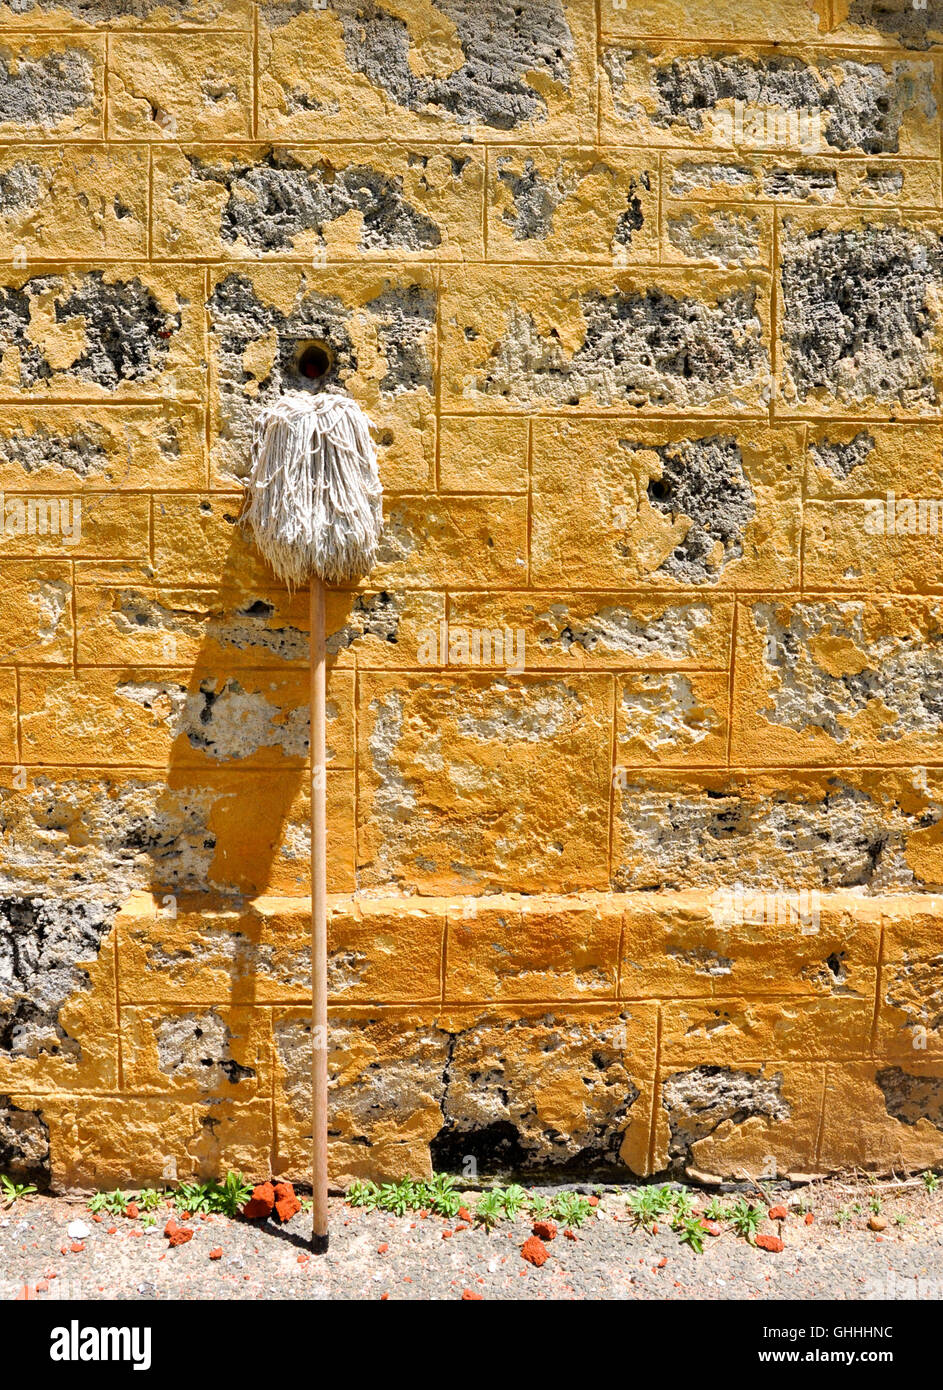 White industrial mop leaning against an limestone brick building exterior with shadow. - Stock Image